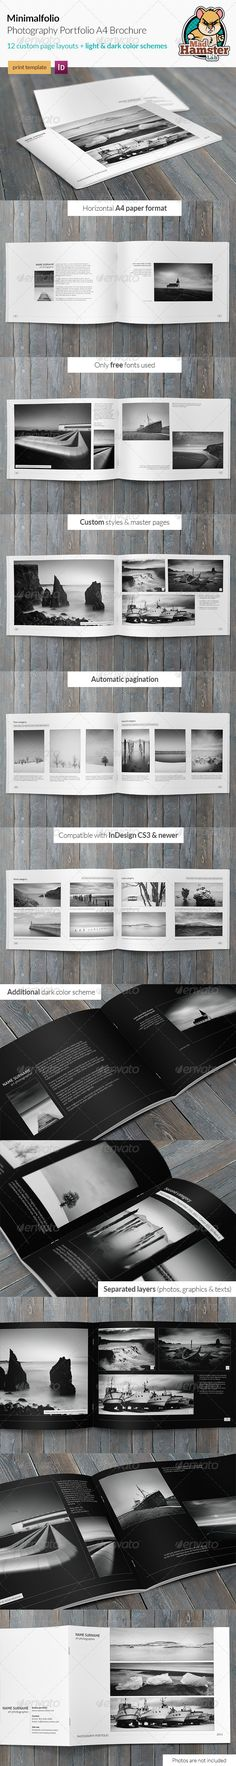 Buy Minimalfolio Photography Portfolio Brochure by MadHamsterLab on GraphicRiver. Minimalfolio is a horizontal photography portfolio brochure. Minimal style makes a clean and elegant look. Portfolio Design Layouts, Layout Design, Portfolio Examples, Print Layout, Print Design, Portfolio Presentation, Presentation Layout, Presentation Boards, Architectural Presentation